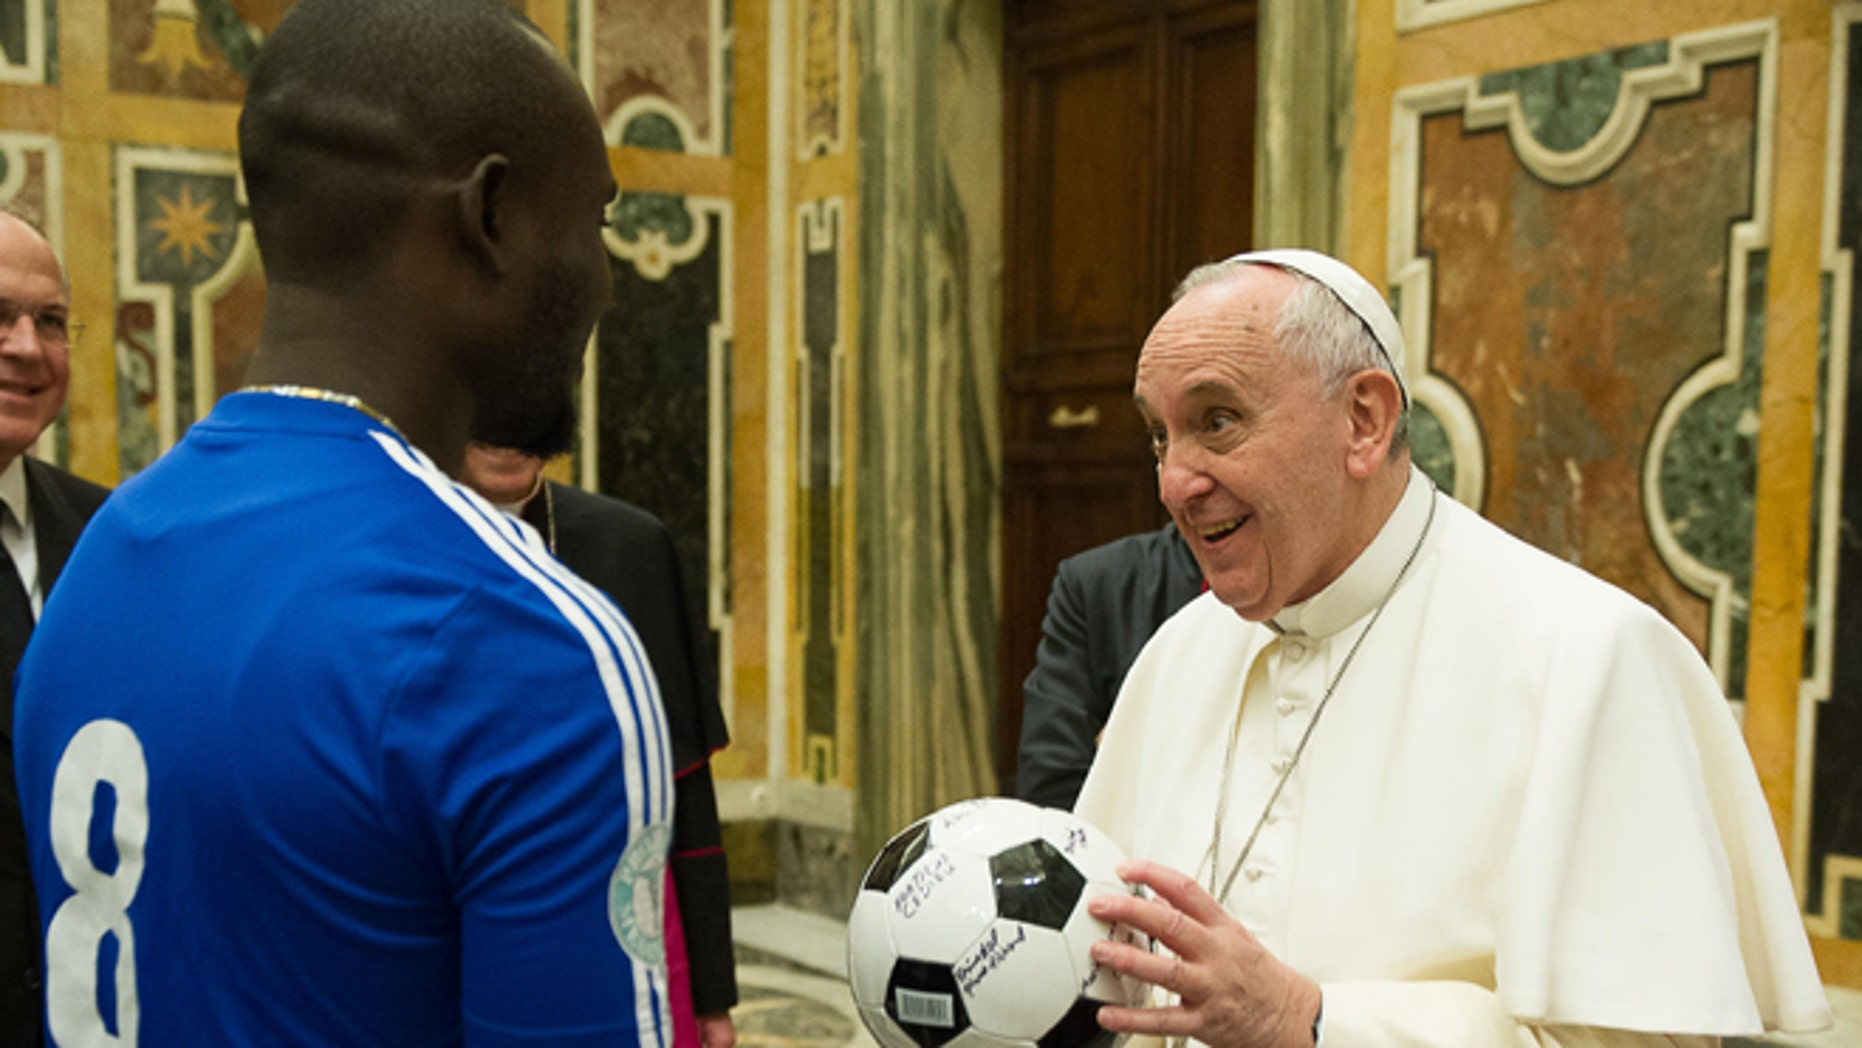 """Pope Francis meets with participants of the meeting organized by the Pontifical Council """" Cor Unum """" and the Pontifical Commission for Latin America on the fifth anniversary of the Haiti's earthquake during a private audience at the Vatican, Saturday, Jan. 10, 2015. (AP Photo/L'Osservatore Romano, Pool)"""